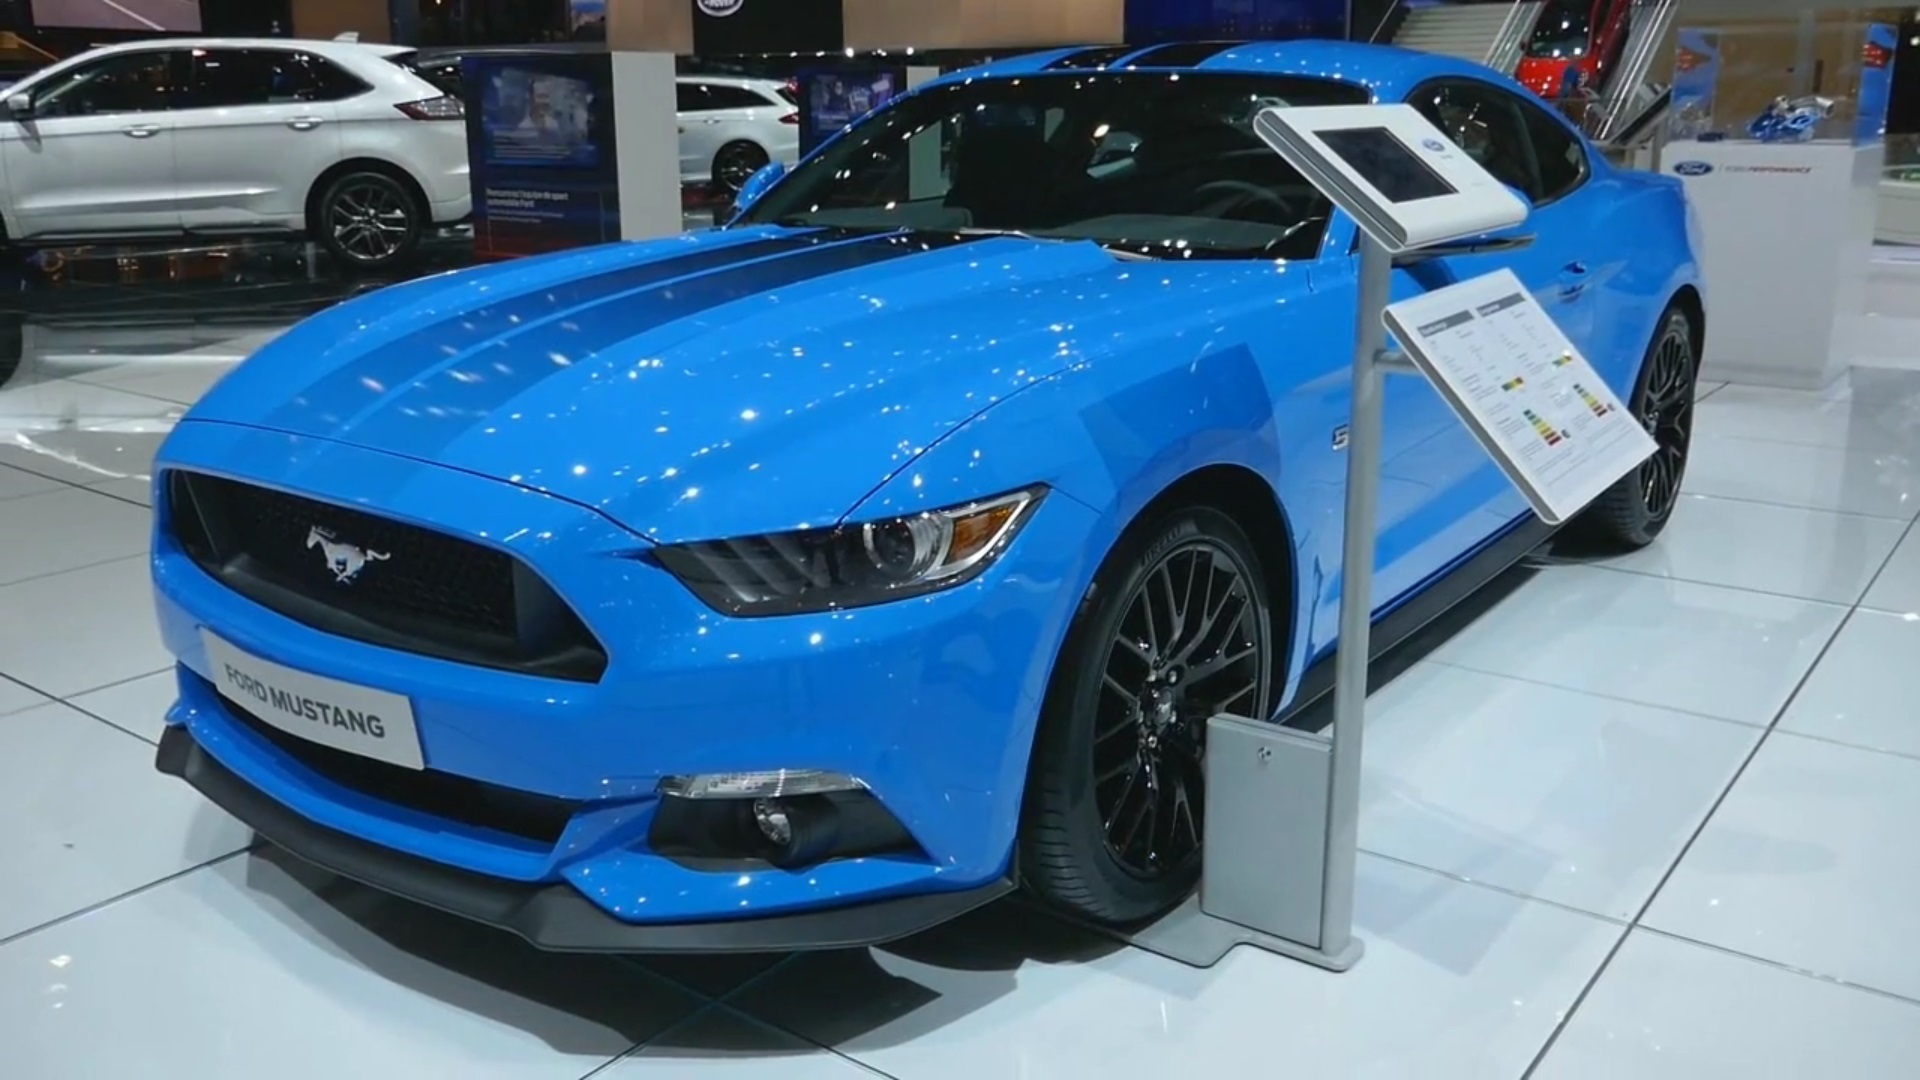 Video: 2017 Ford Mustang Blue Edition Walkaround